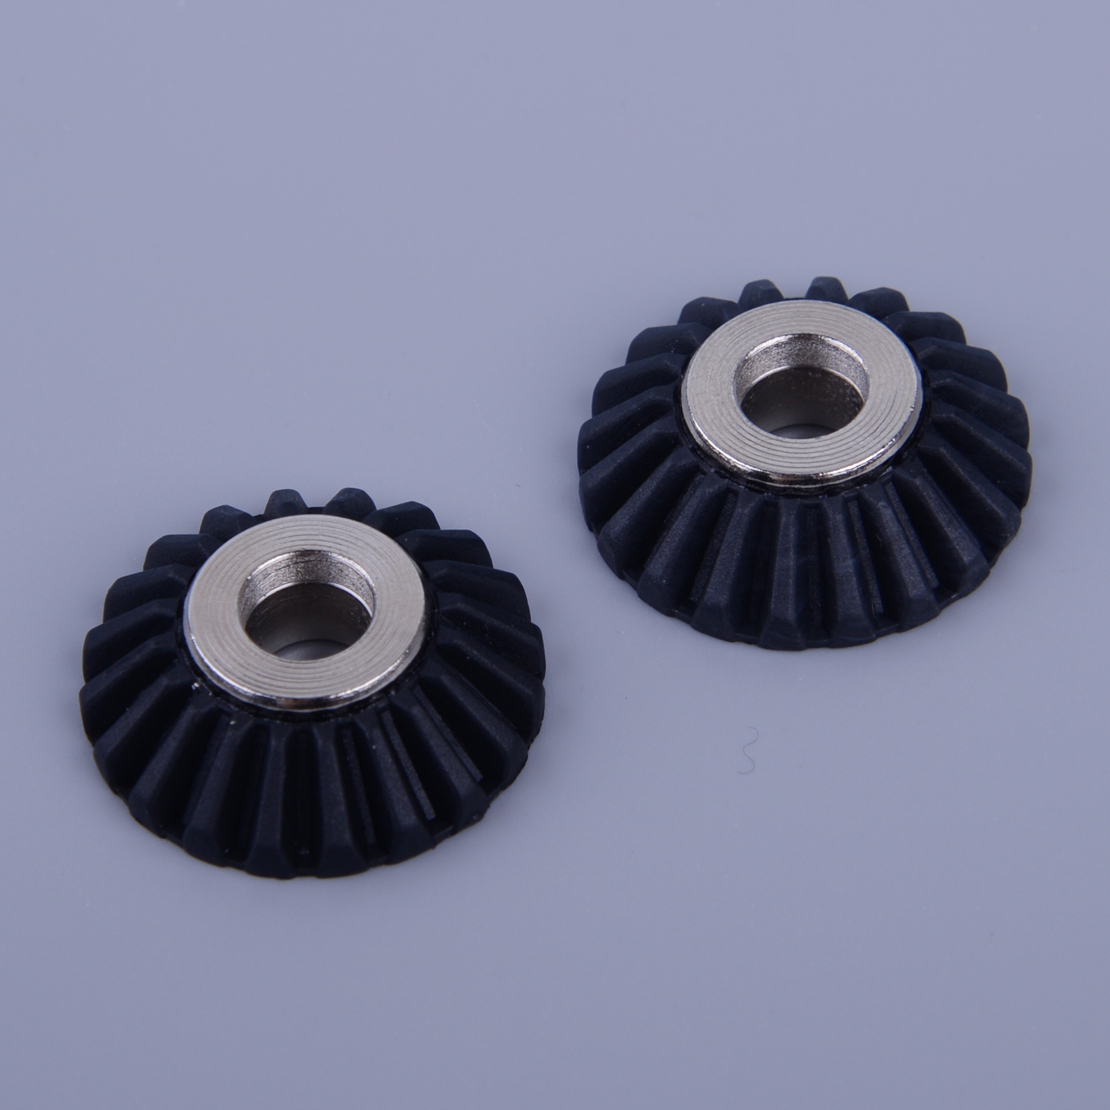 New 2PCS Hook 20 Teeth Drive Gears 153021G Fit for SINGER 700 702 706 708 720 722 Sewing Machine Parts